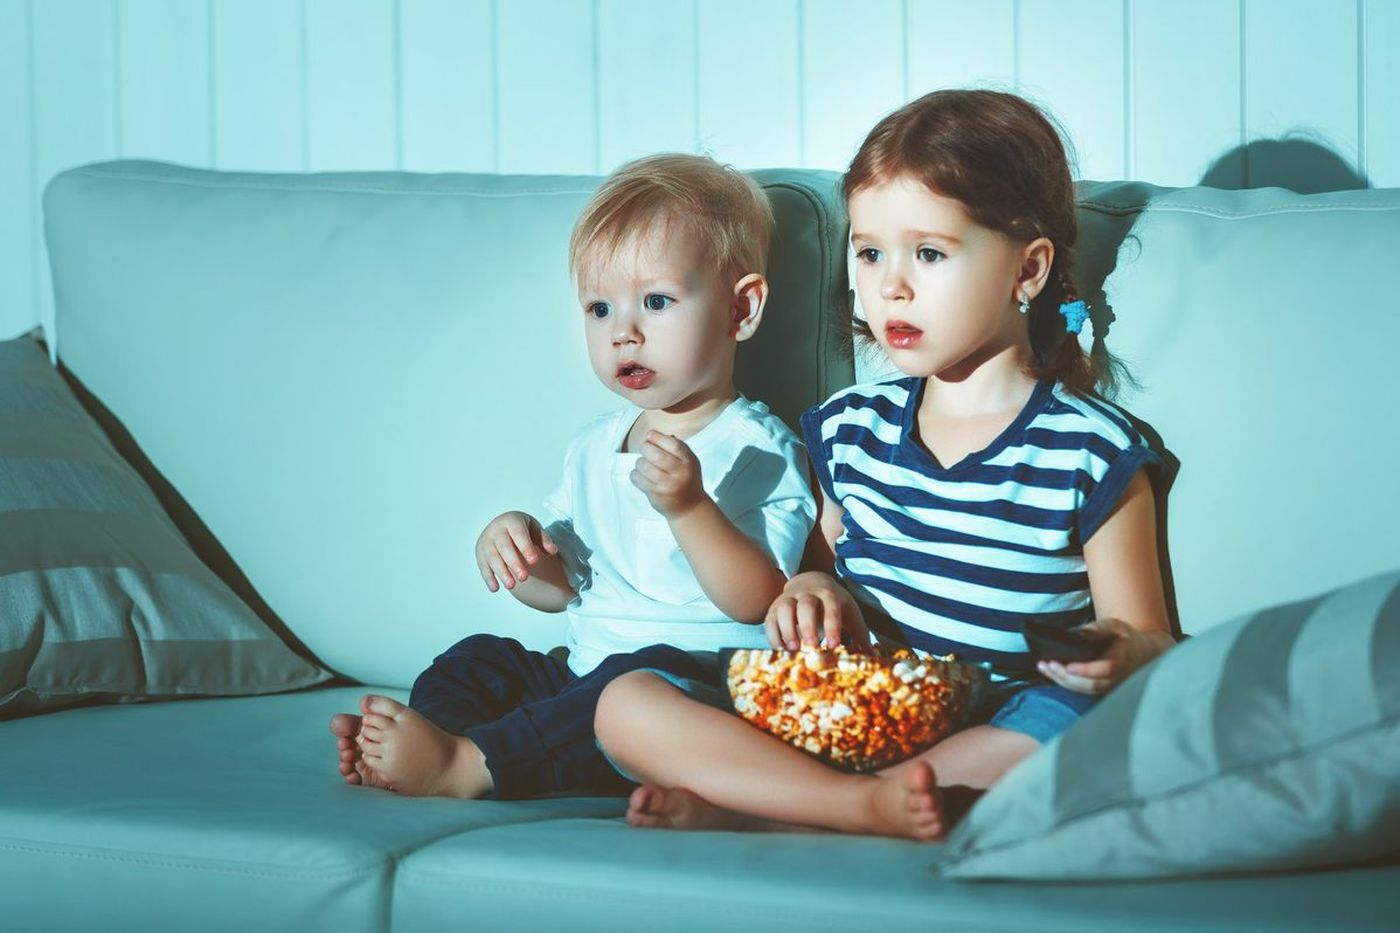 More than 2 hours of screen time a day may affect a child's cognition